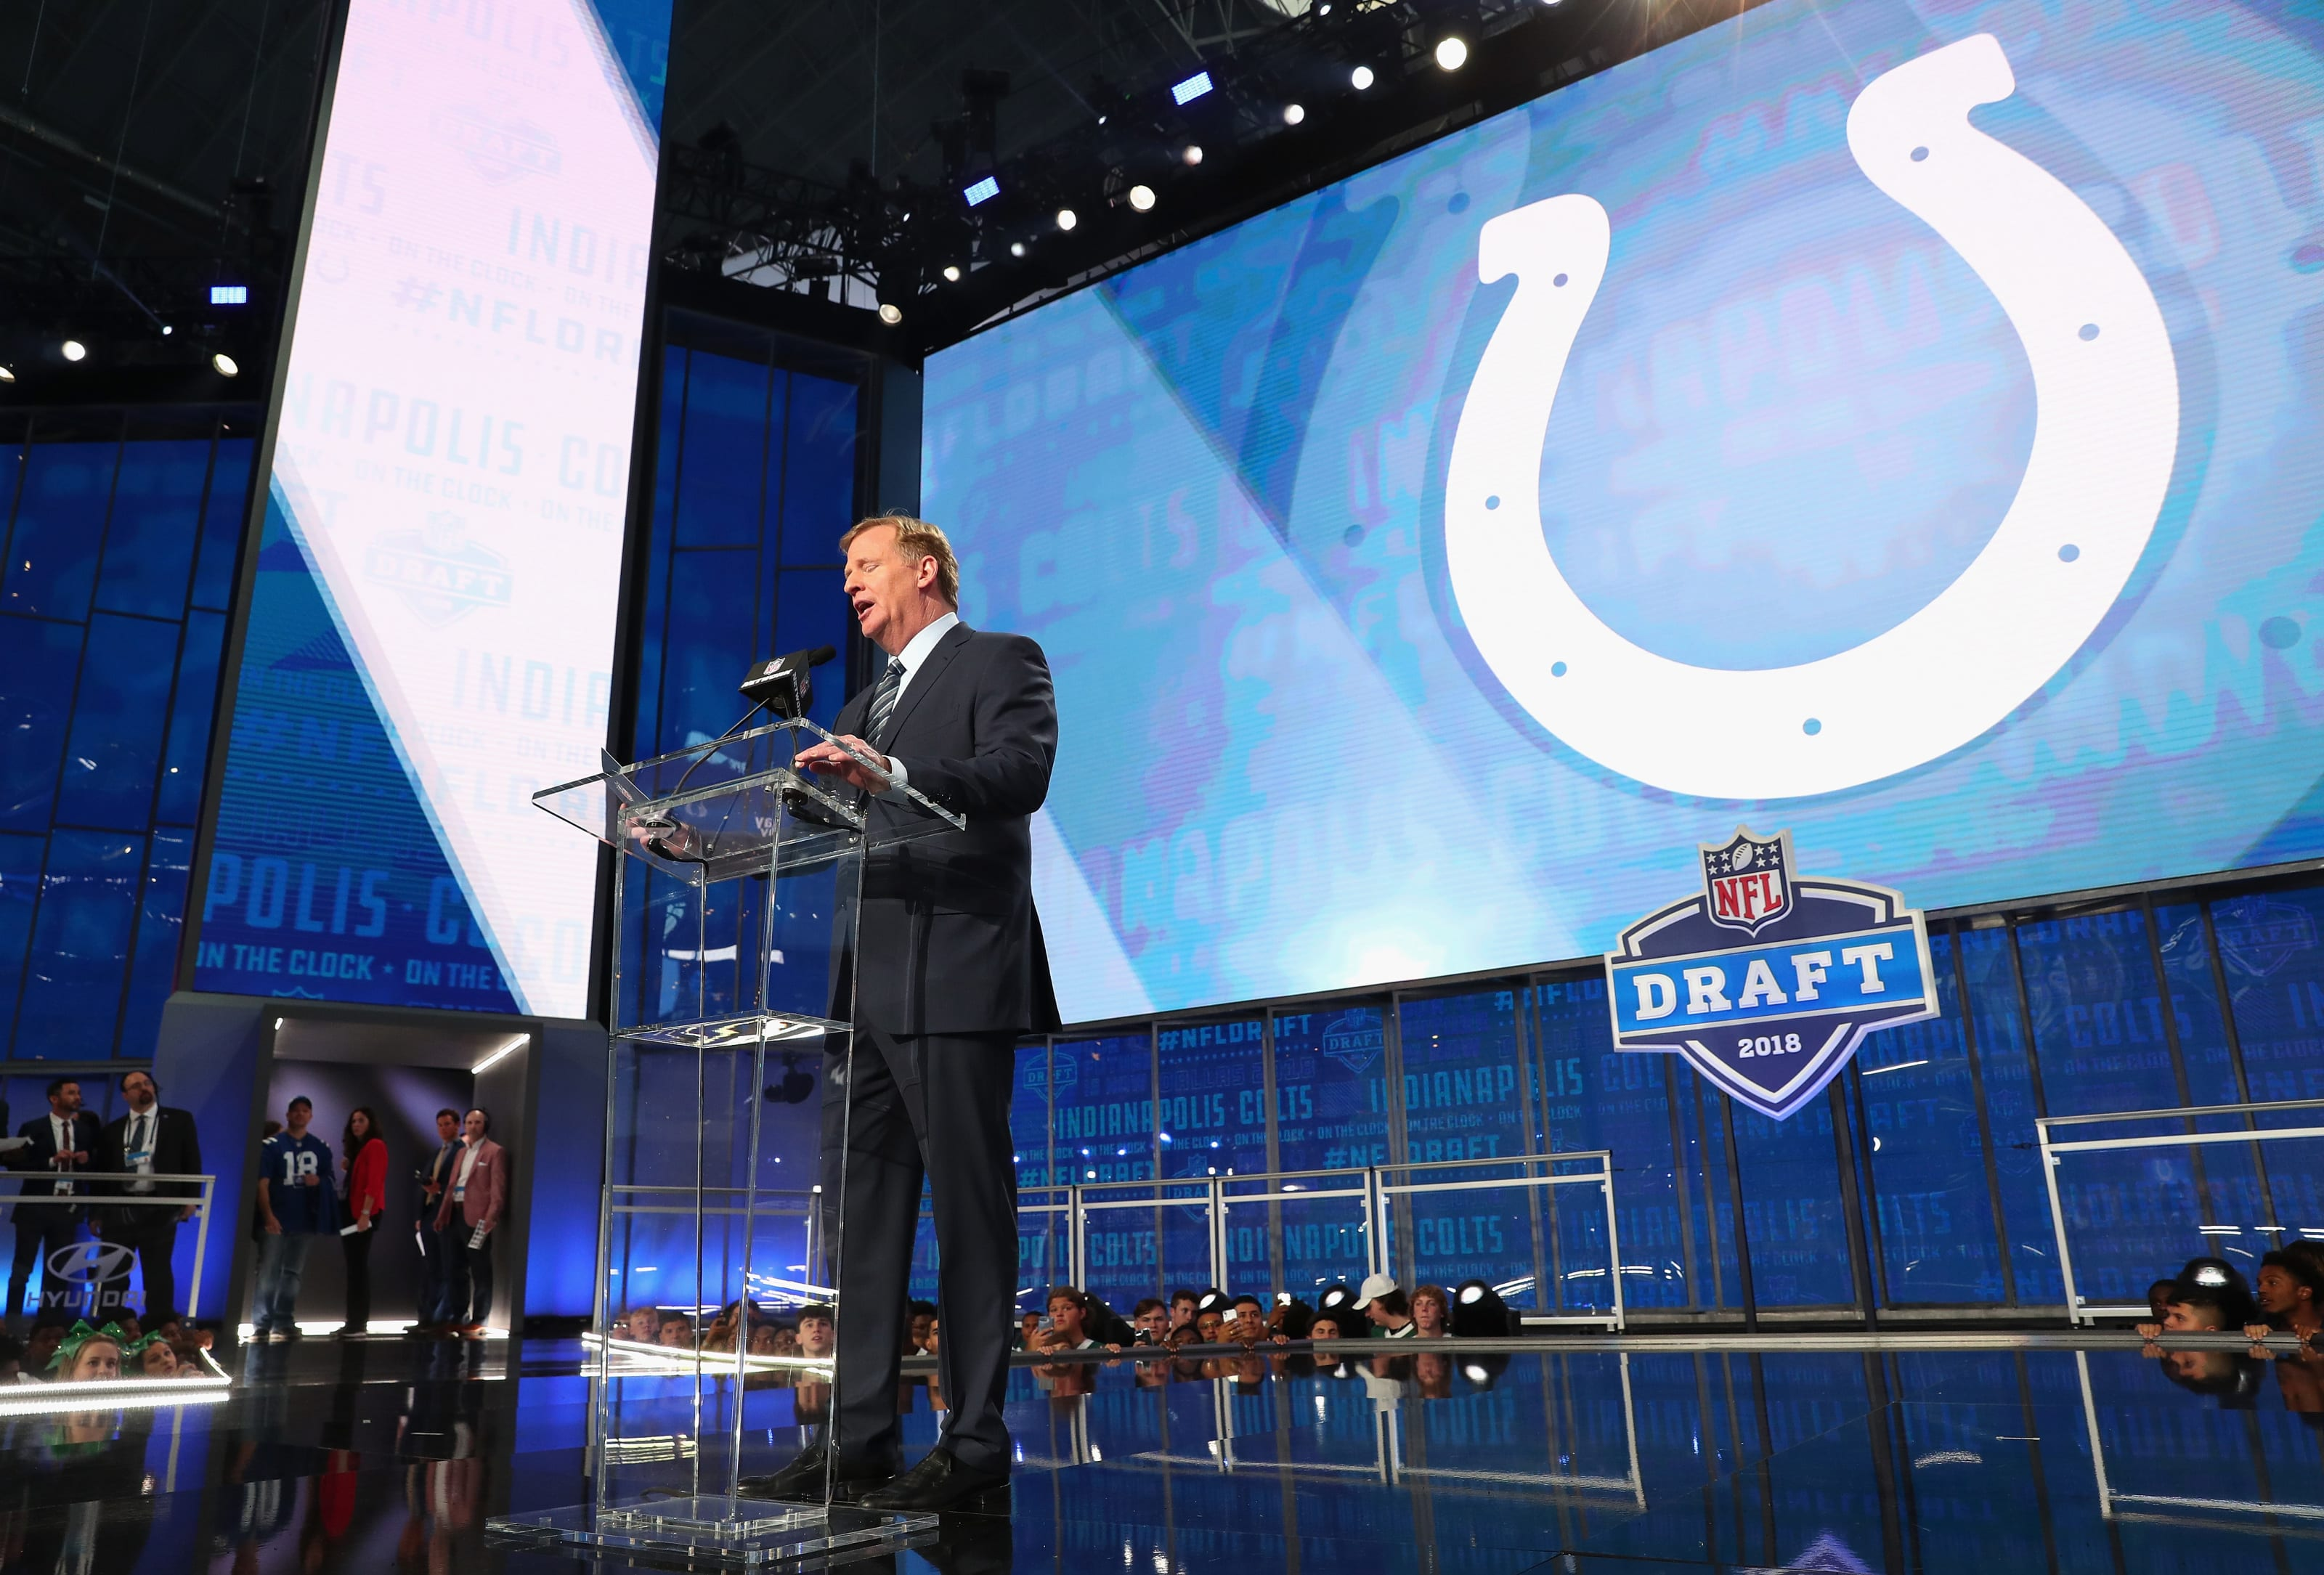 NFL Draft, Indianapolis Colts